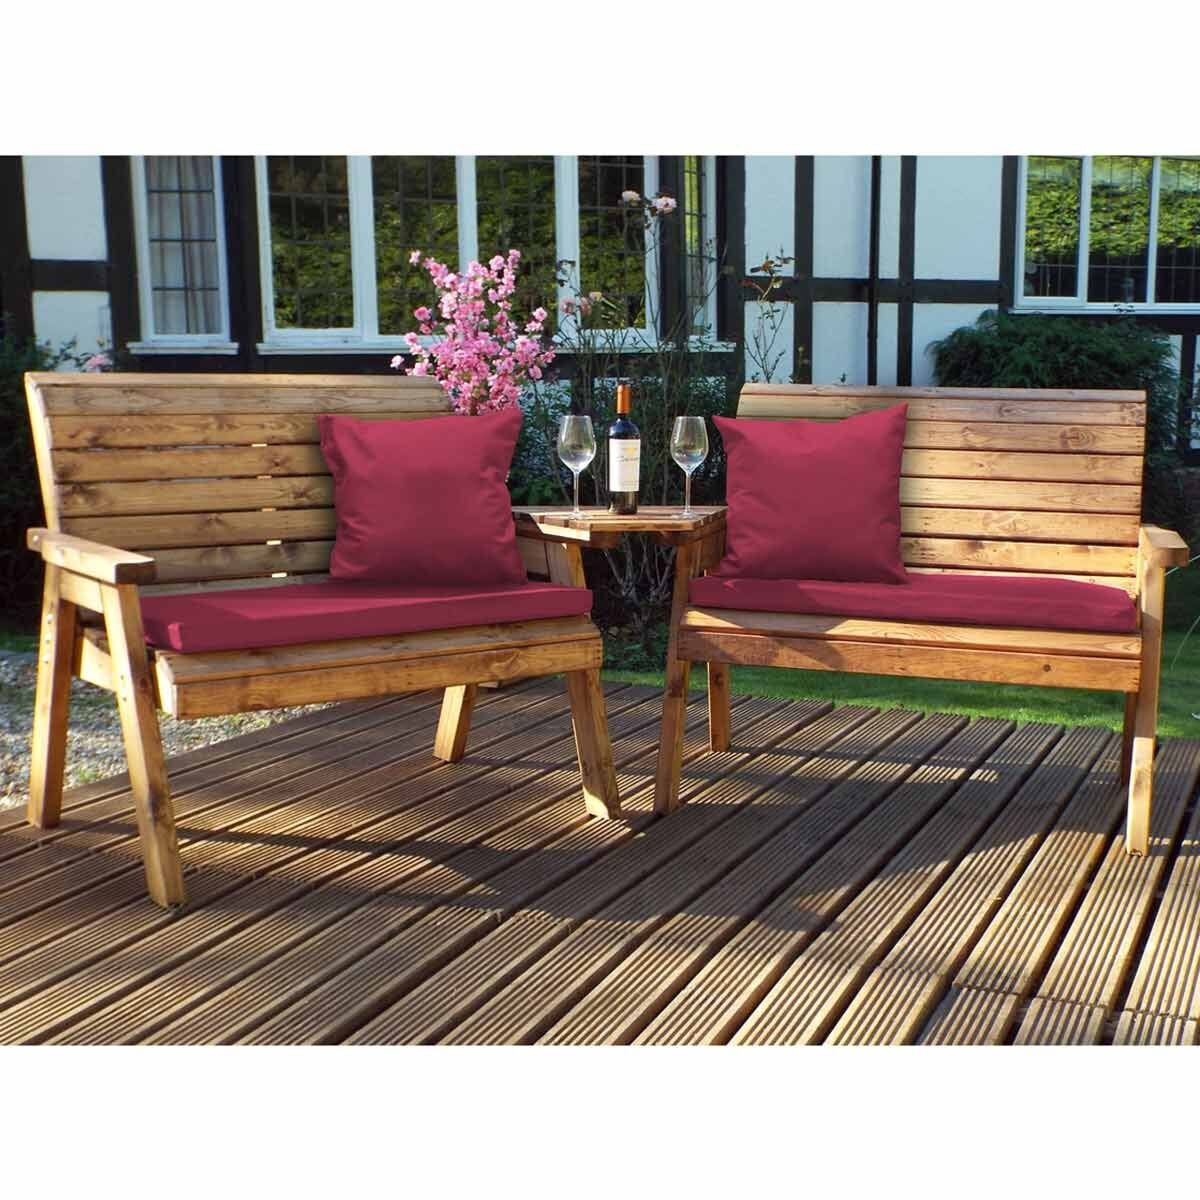 Charles Taylor Twin Angled Bench Set with Cushions Burgundy